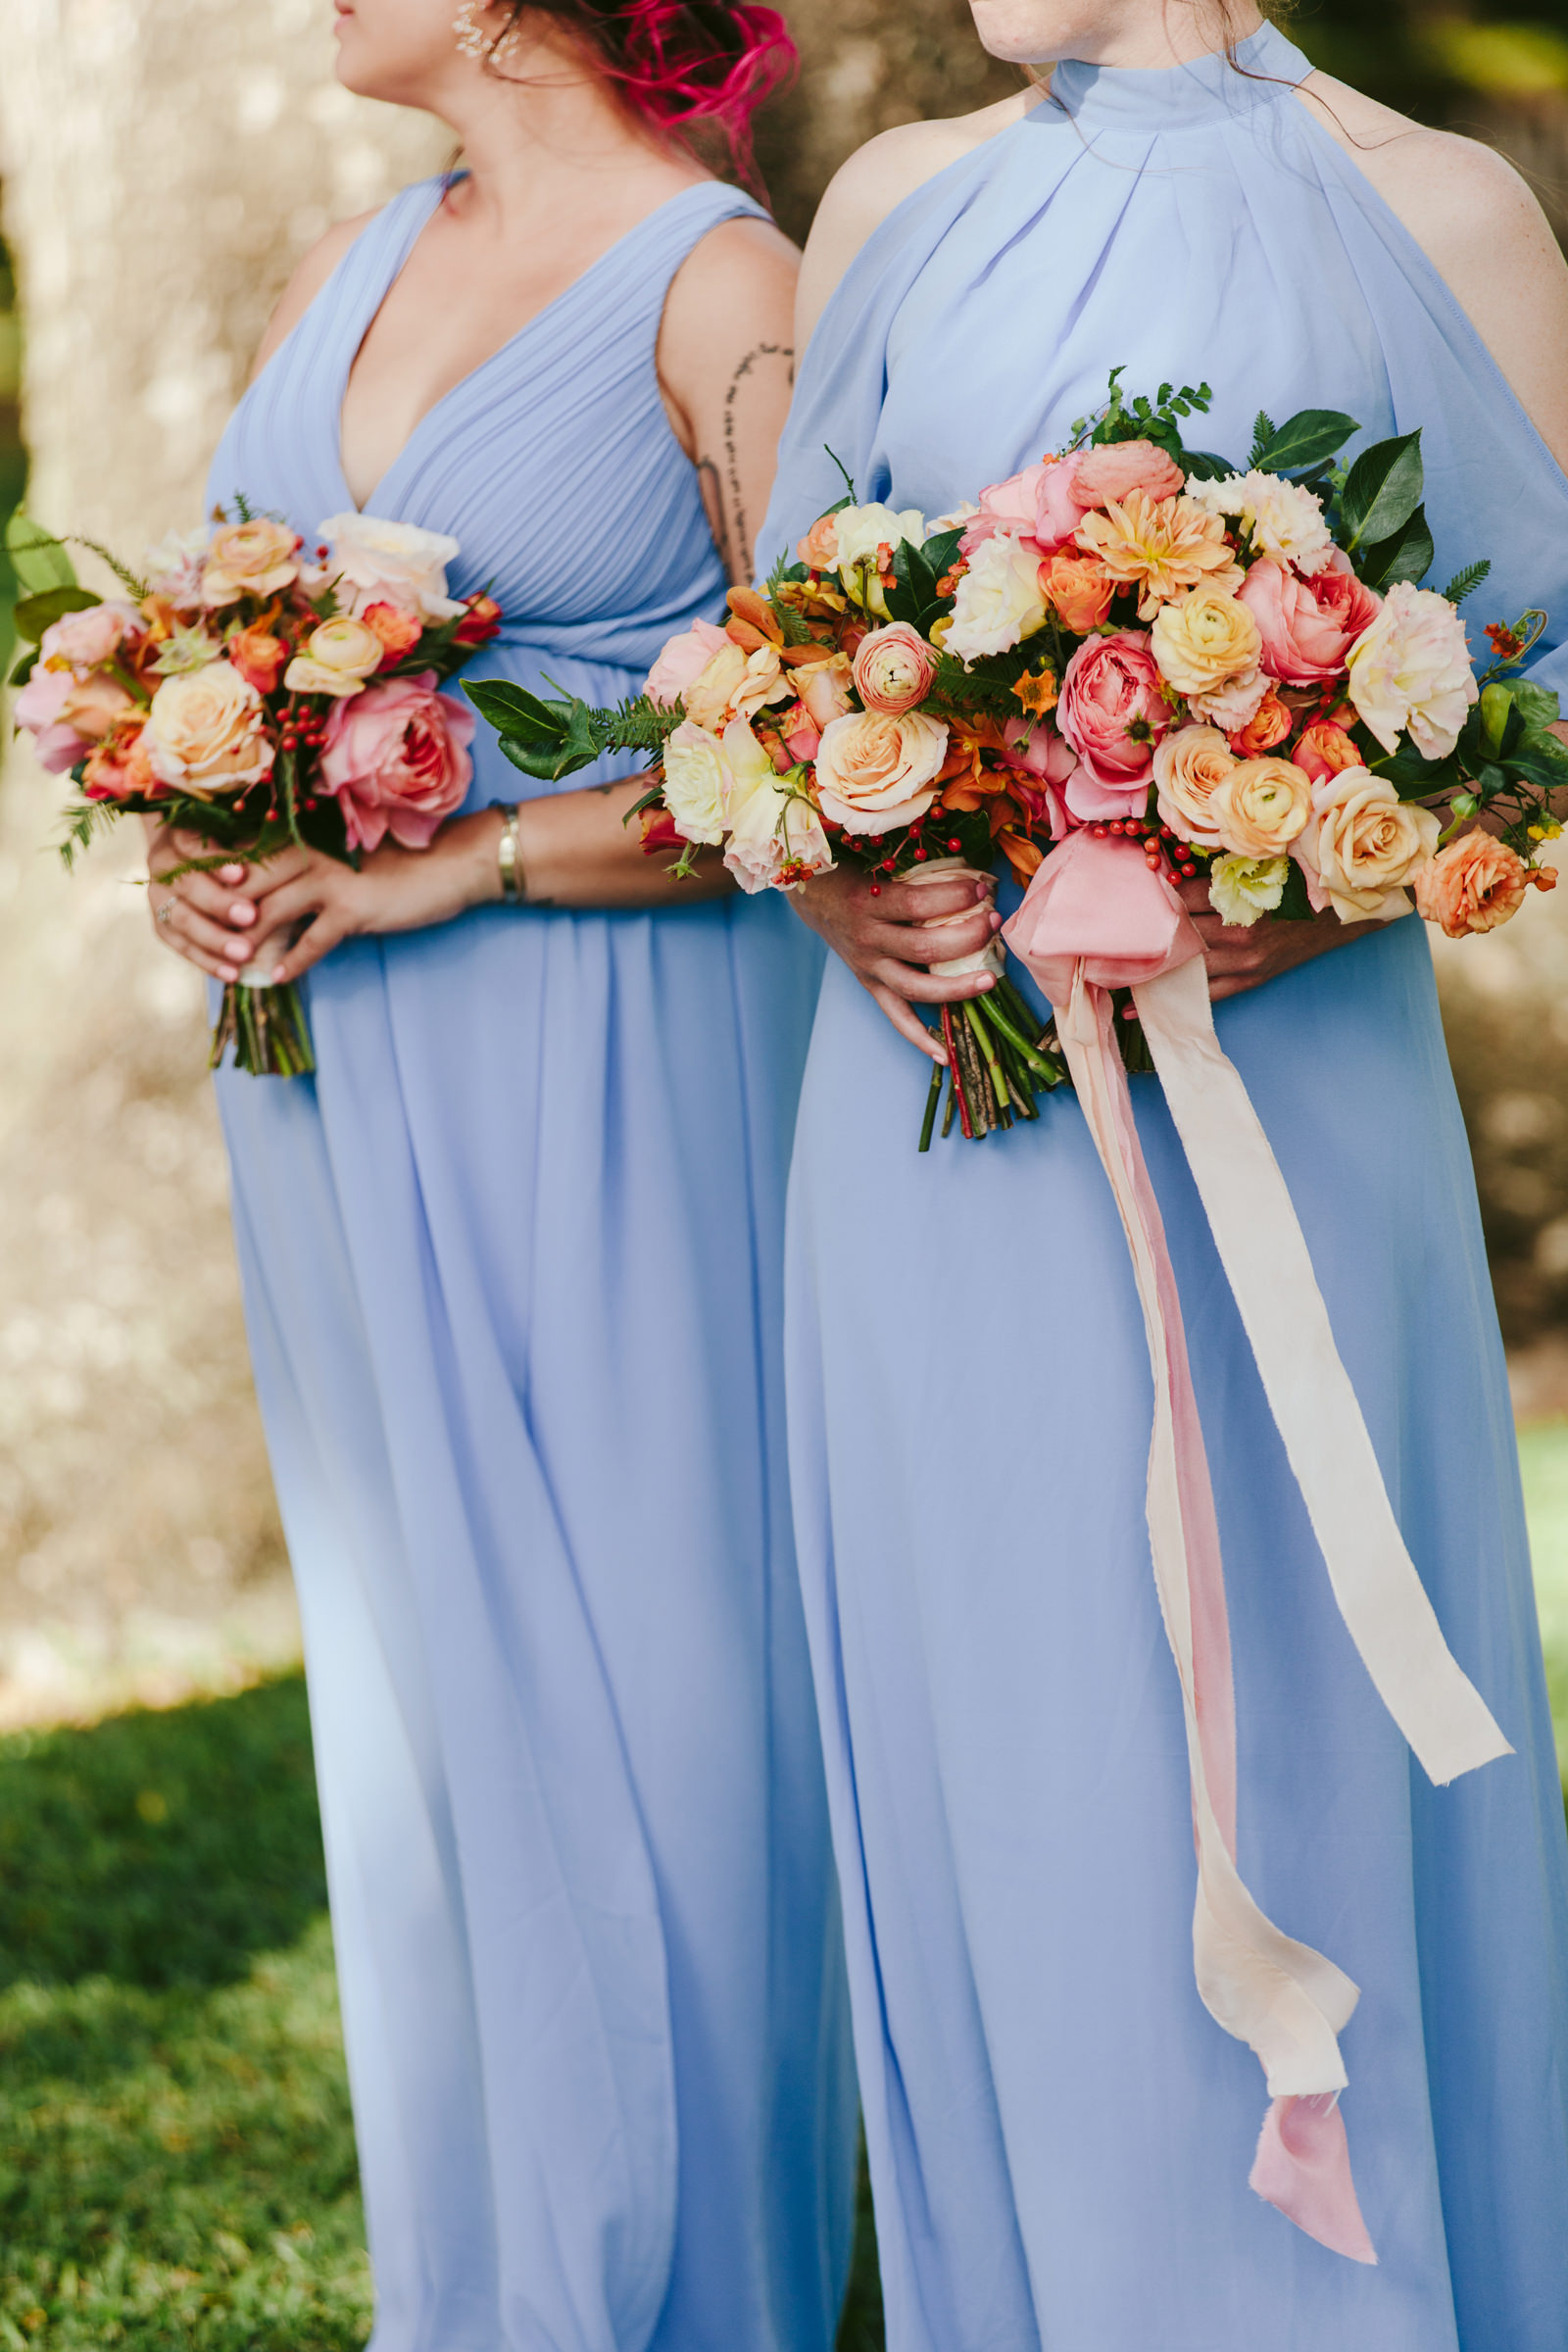 Beautiful peony and rose bouquets - photo by Melia Lucida